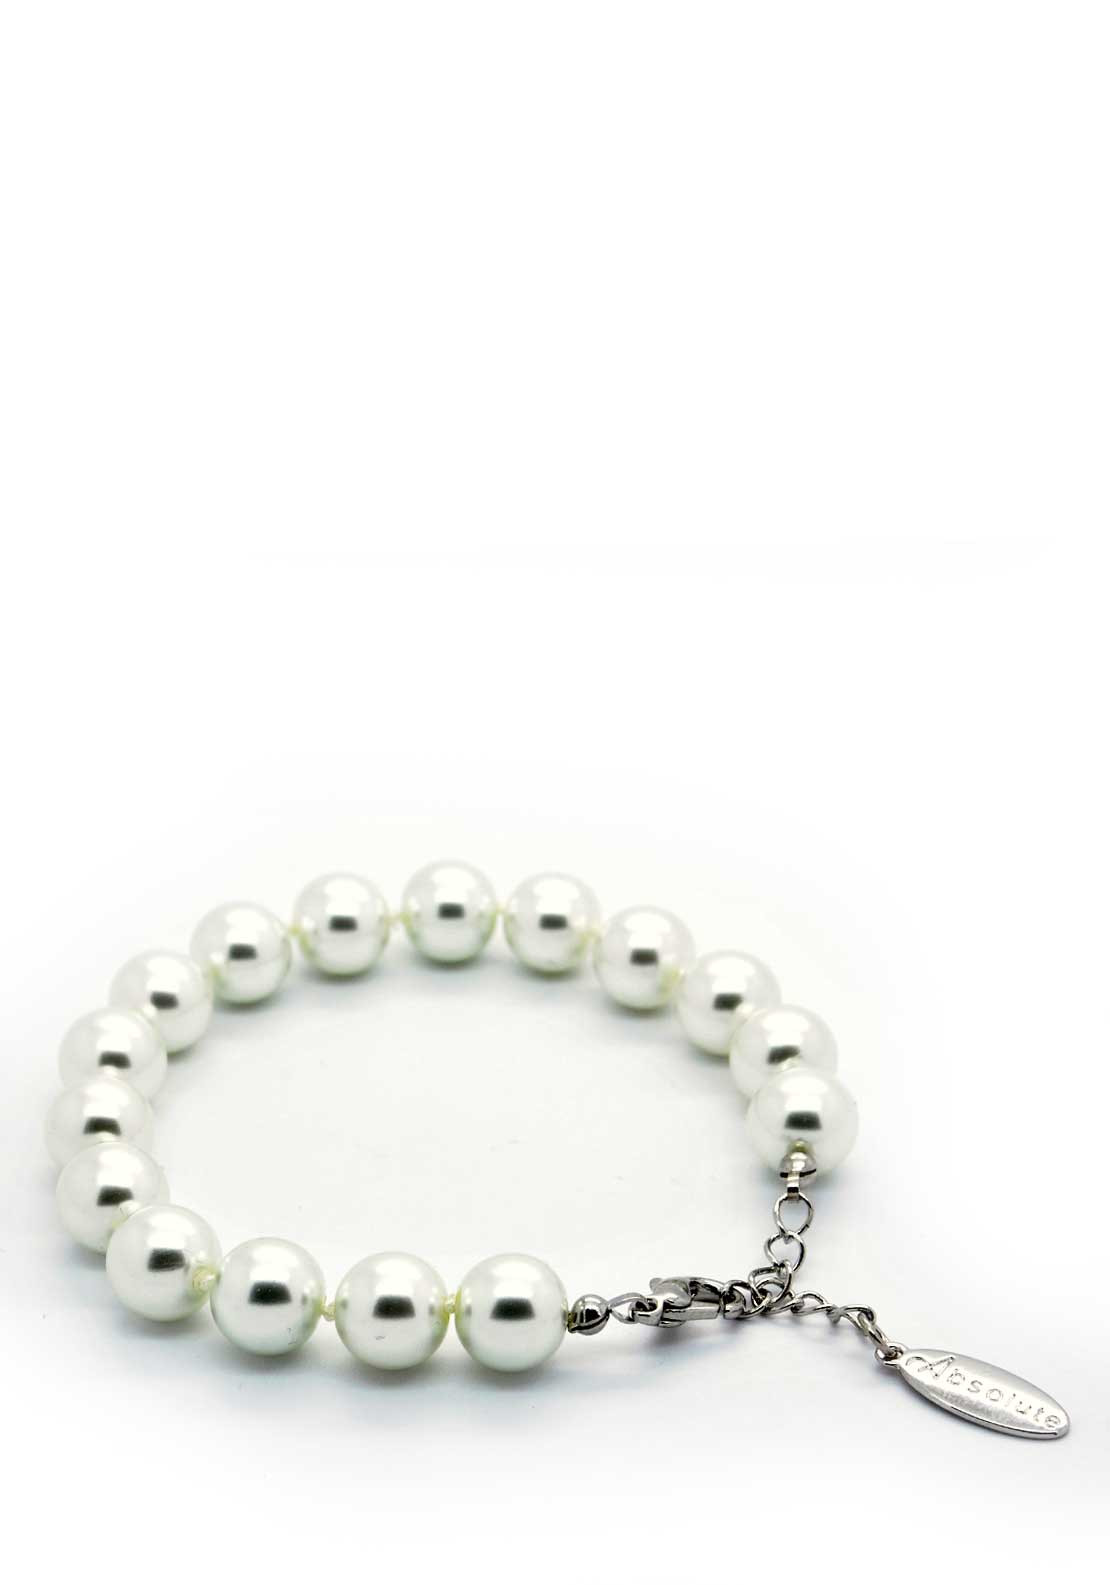 Absolute Jewellery Pearl Bracelet with Silver fixings, White